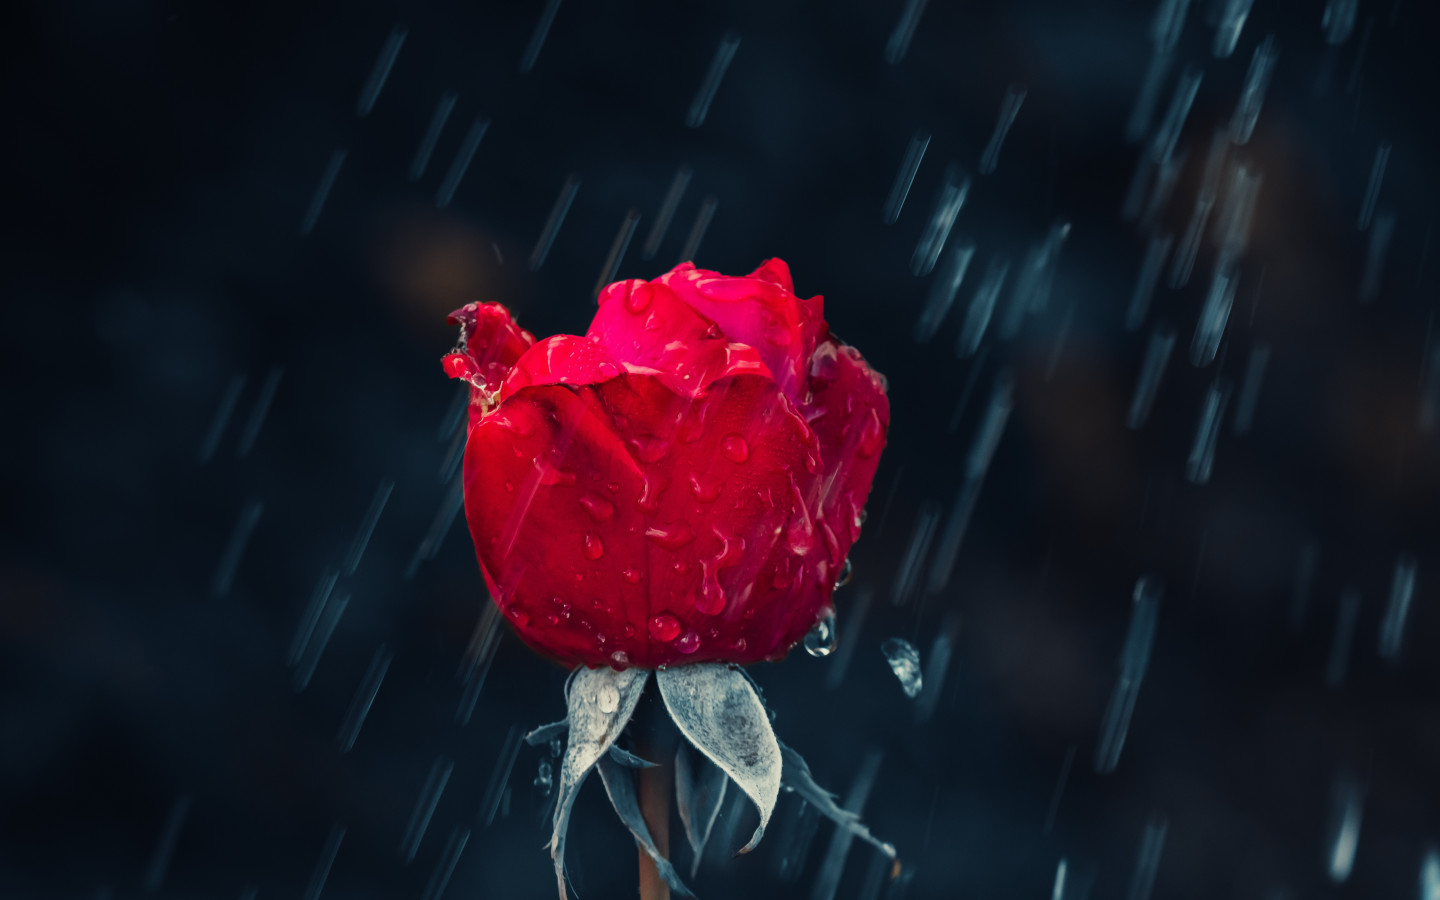 Red rose and raindrops wallpaper 1440x900